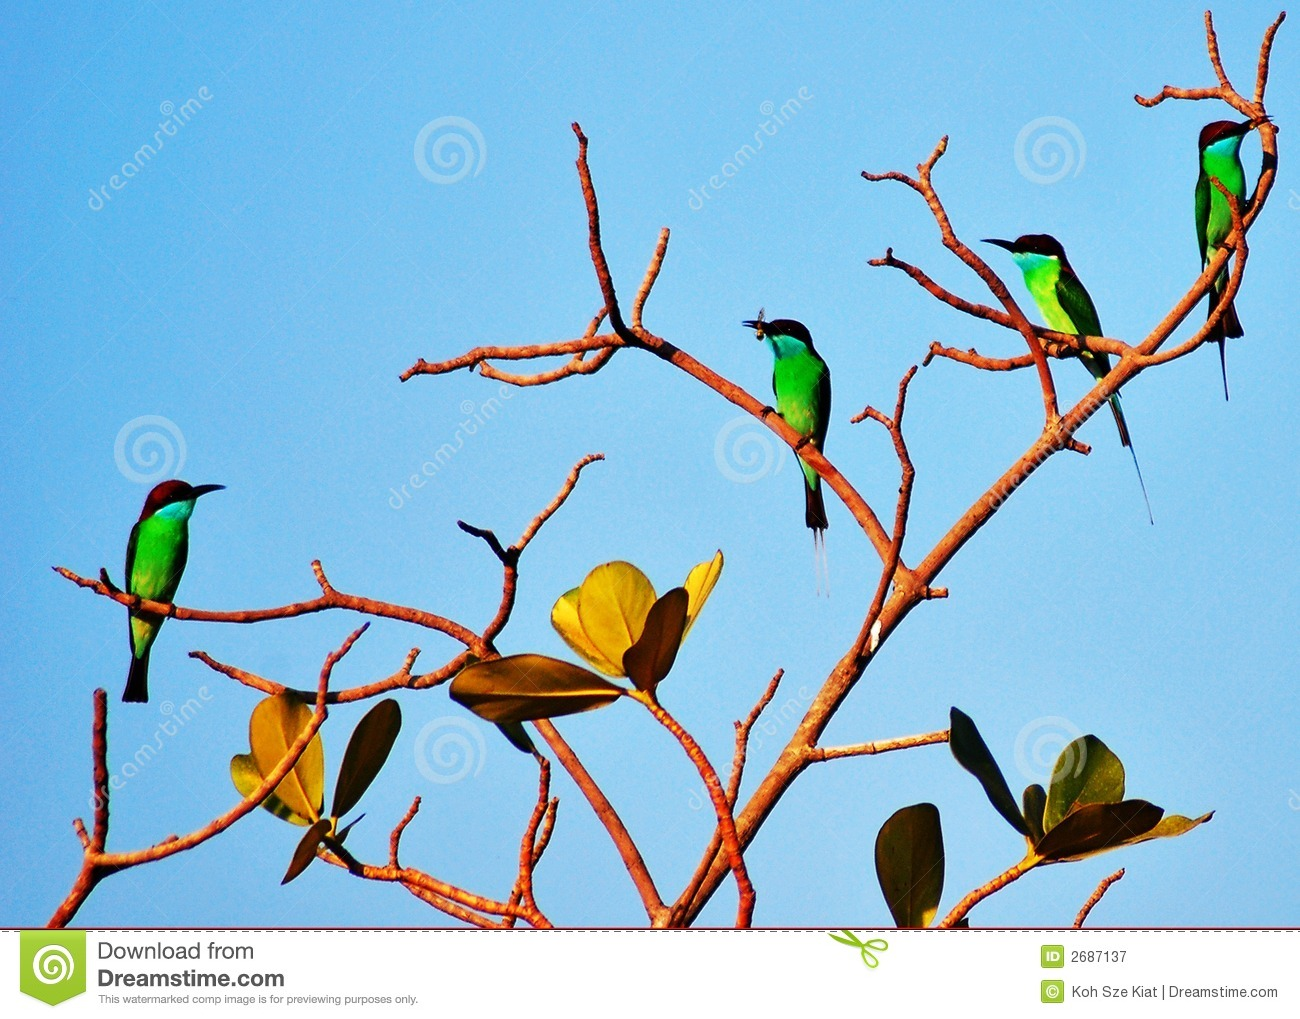 Colourful Birds On Tree Branch Stock Image - Image of ...